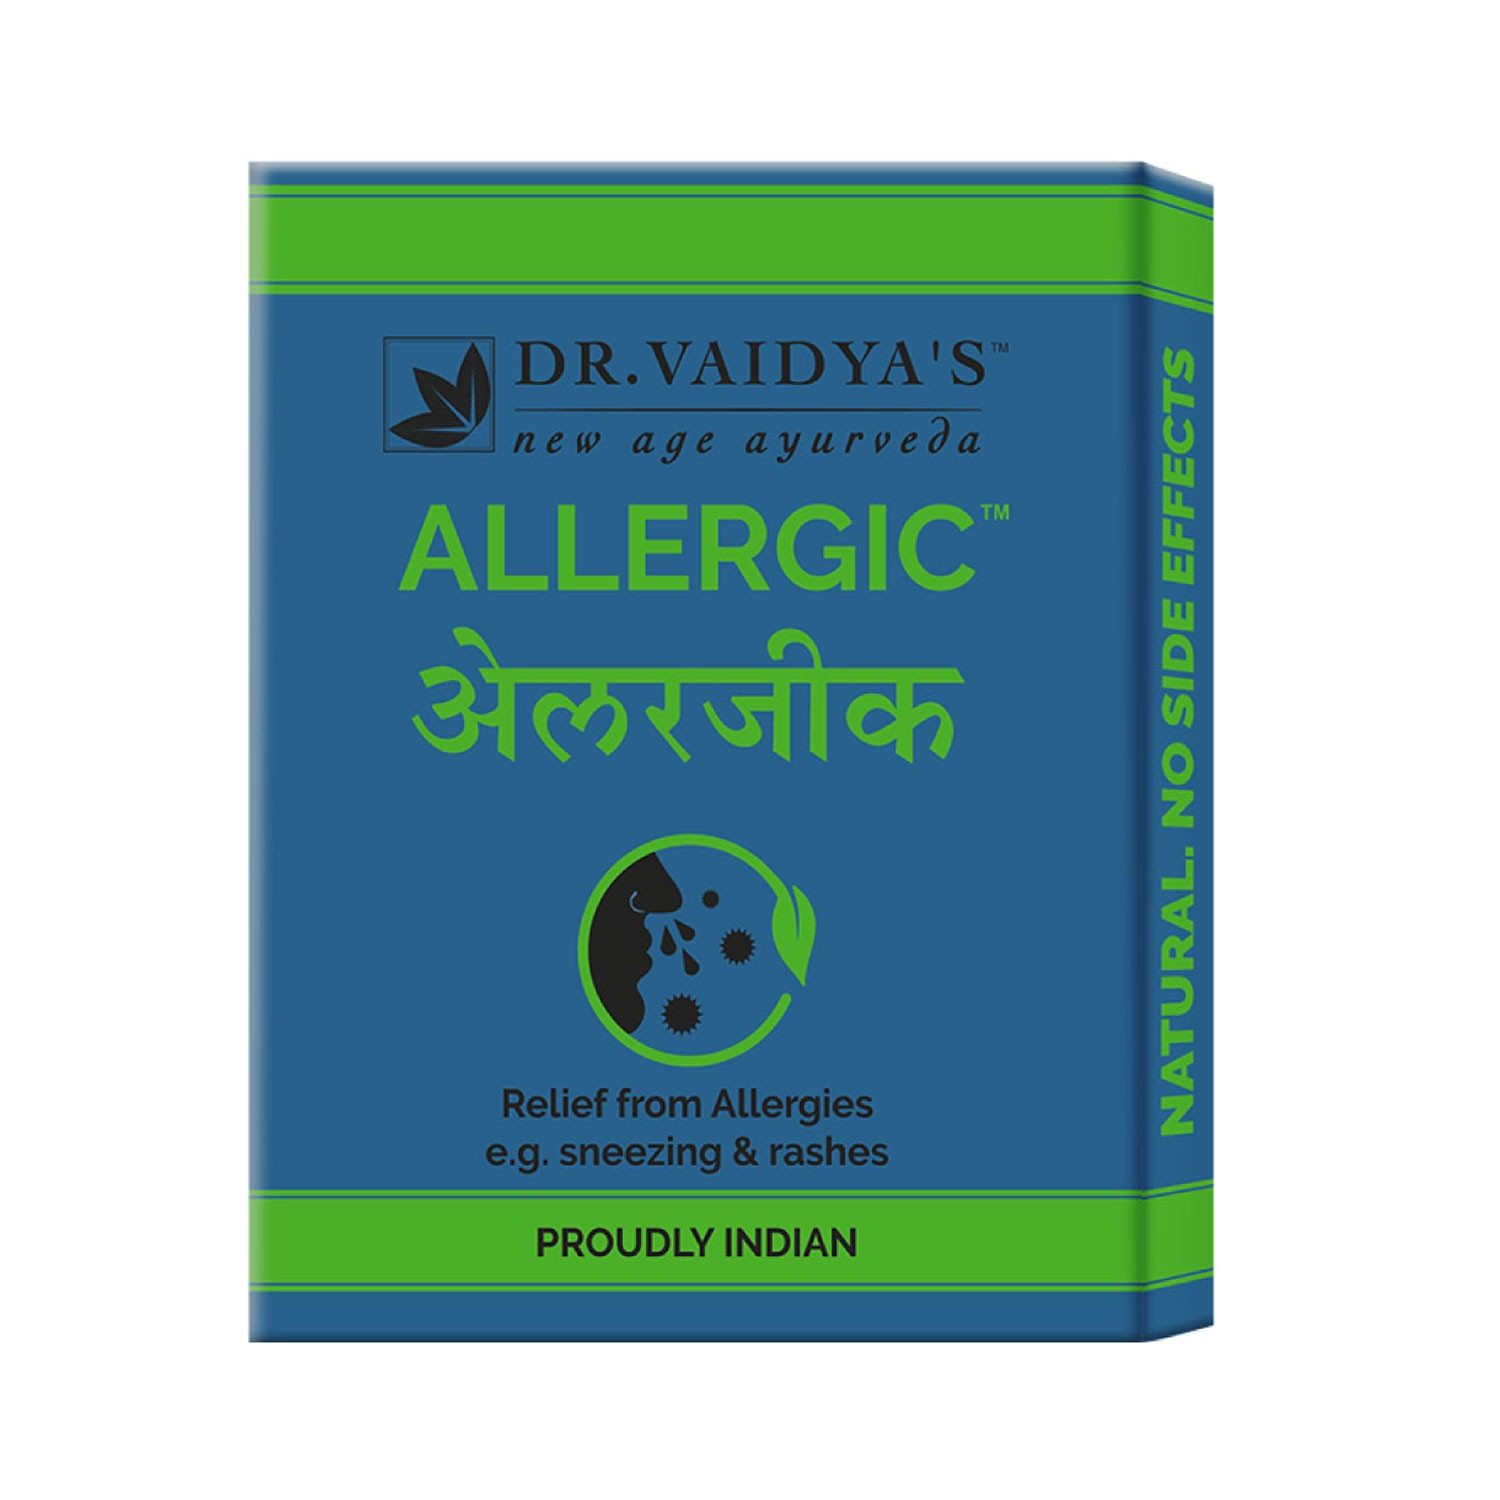 Dr. Vaidya's Allergic Pills - Ayurvedic Treatment for Allergy & Cold - Pack of 3